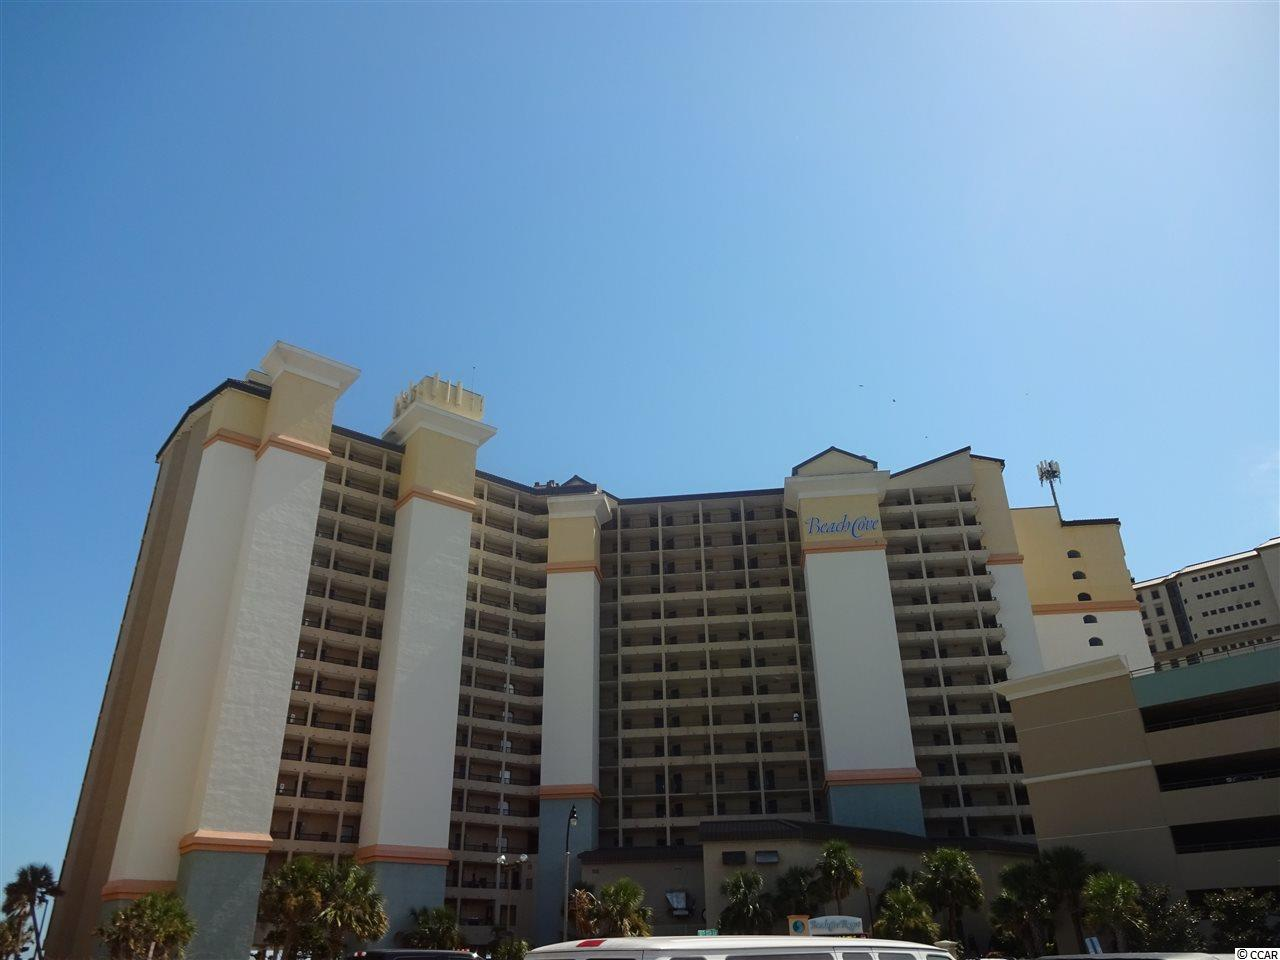 Gorgeous 1 bedroom and 1 full bath condo is fully furnished and direct ocean front is priced to sell and ready to enjoy! This unit has been totally updated from a new HVAC and hot water tank to new cabinets and appliances in the kitchen and granite counter tops in the kitchen and bathroom and 2 new queen size mattresses. All the flooring has been replace with luxury porcelain plank flooring and new tile in the bathroom. This unit has been well maintained and is waiting for you to wallow in the breathtaking views of the beautiful ocean from your large balcony. Beach Cove Resort has it all from indoor/outdoor pools and spas, lazy river, racket ball court, sauna, gym, conference rooms, restaurants, bars, game room and much much more! This resort is located near Barefoot Resort and area attractions and is just minutes from anywhere on the Grand Strand. This condo should be at the top of your list so don't miss your chance to own a piece of Paradise!!!